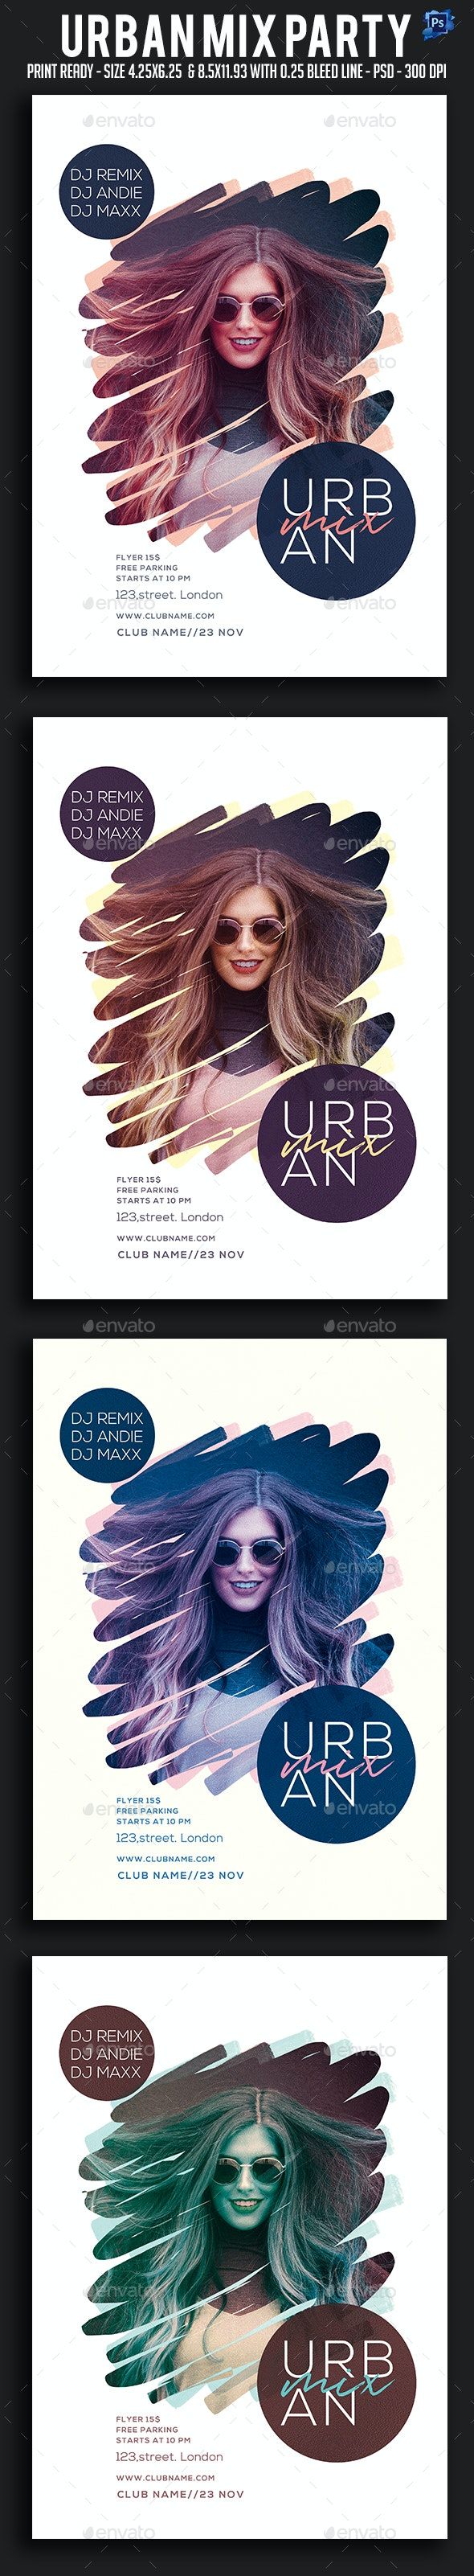 Urban Mix Party Flyer - Clubs & Parties Events